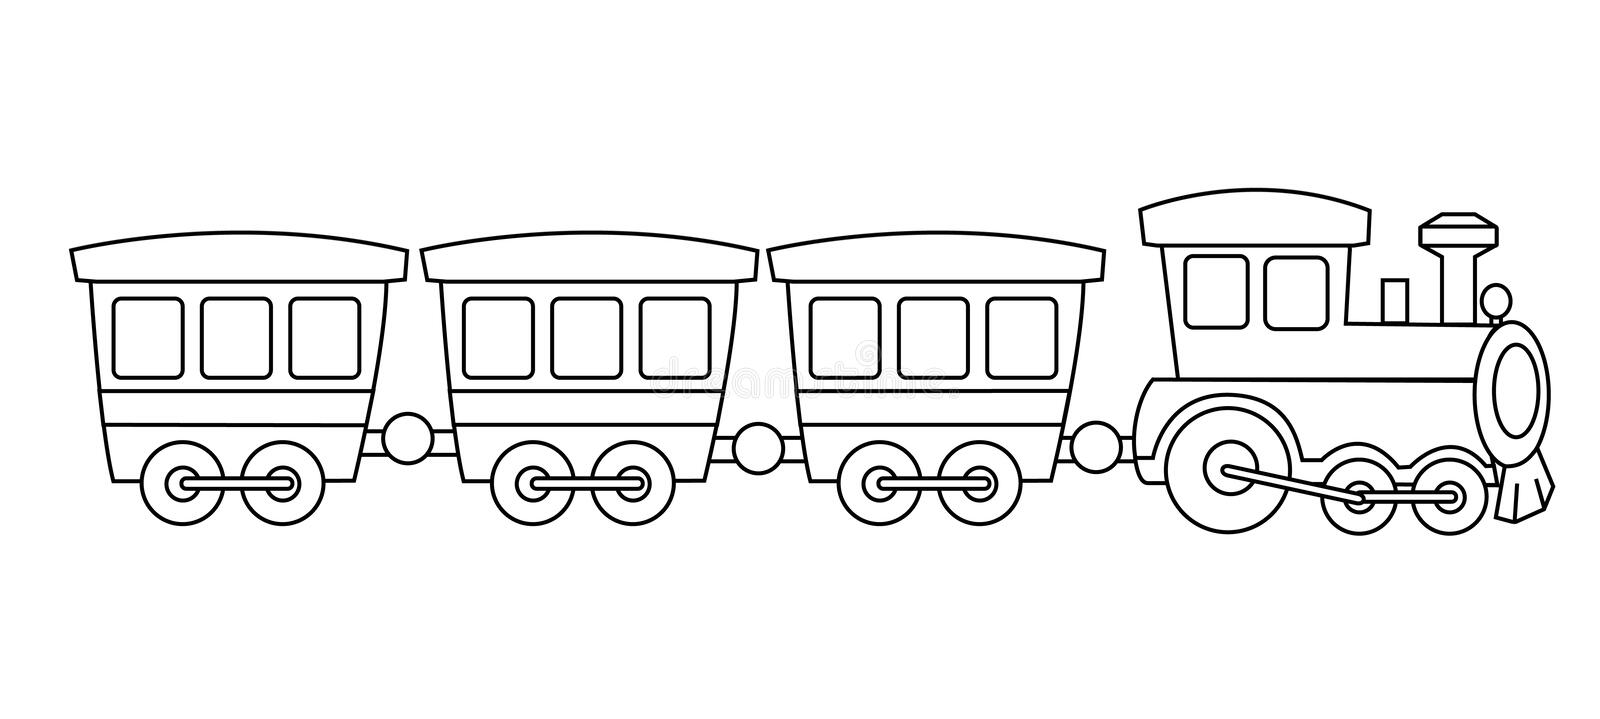 Toy train stock vector. Illustration of coach, clipart ...